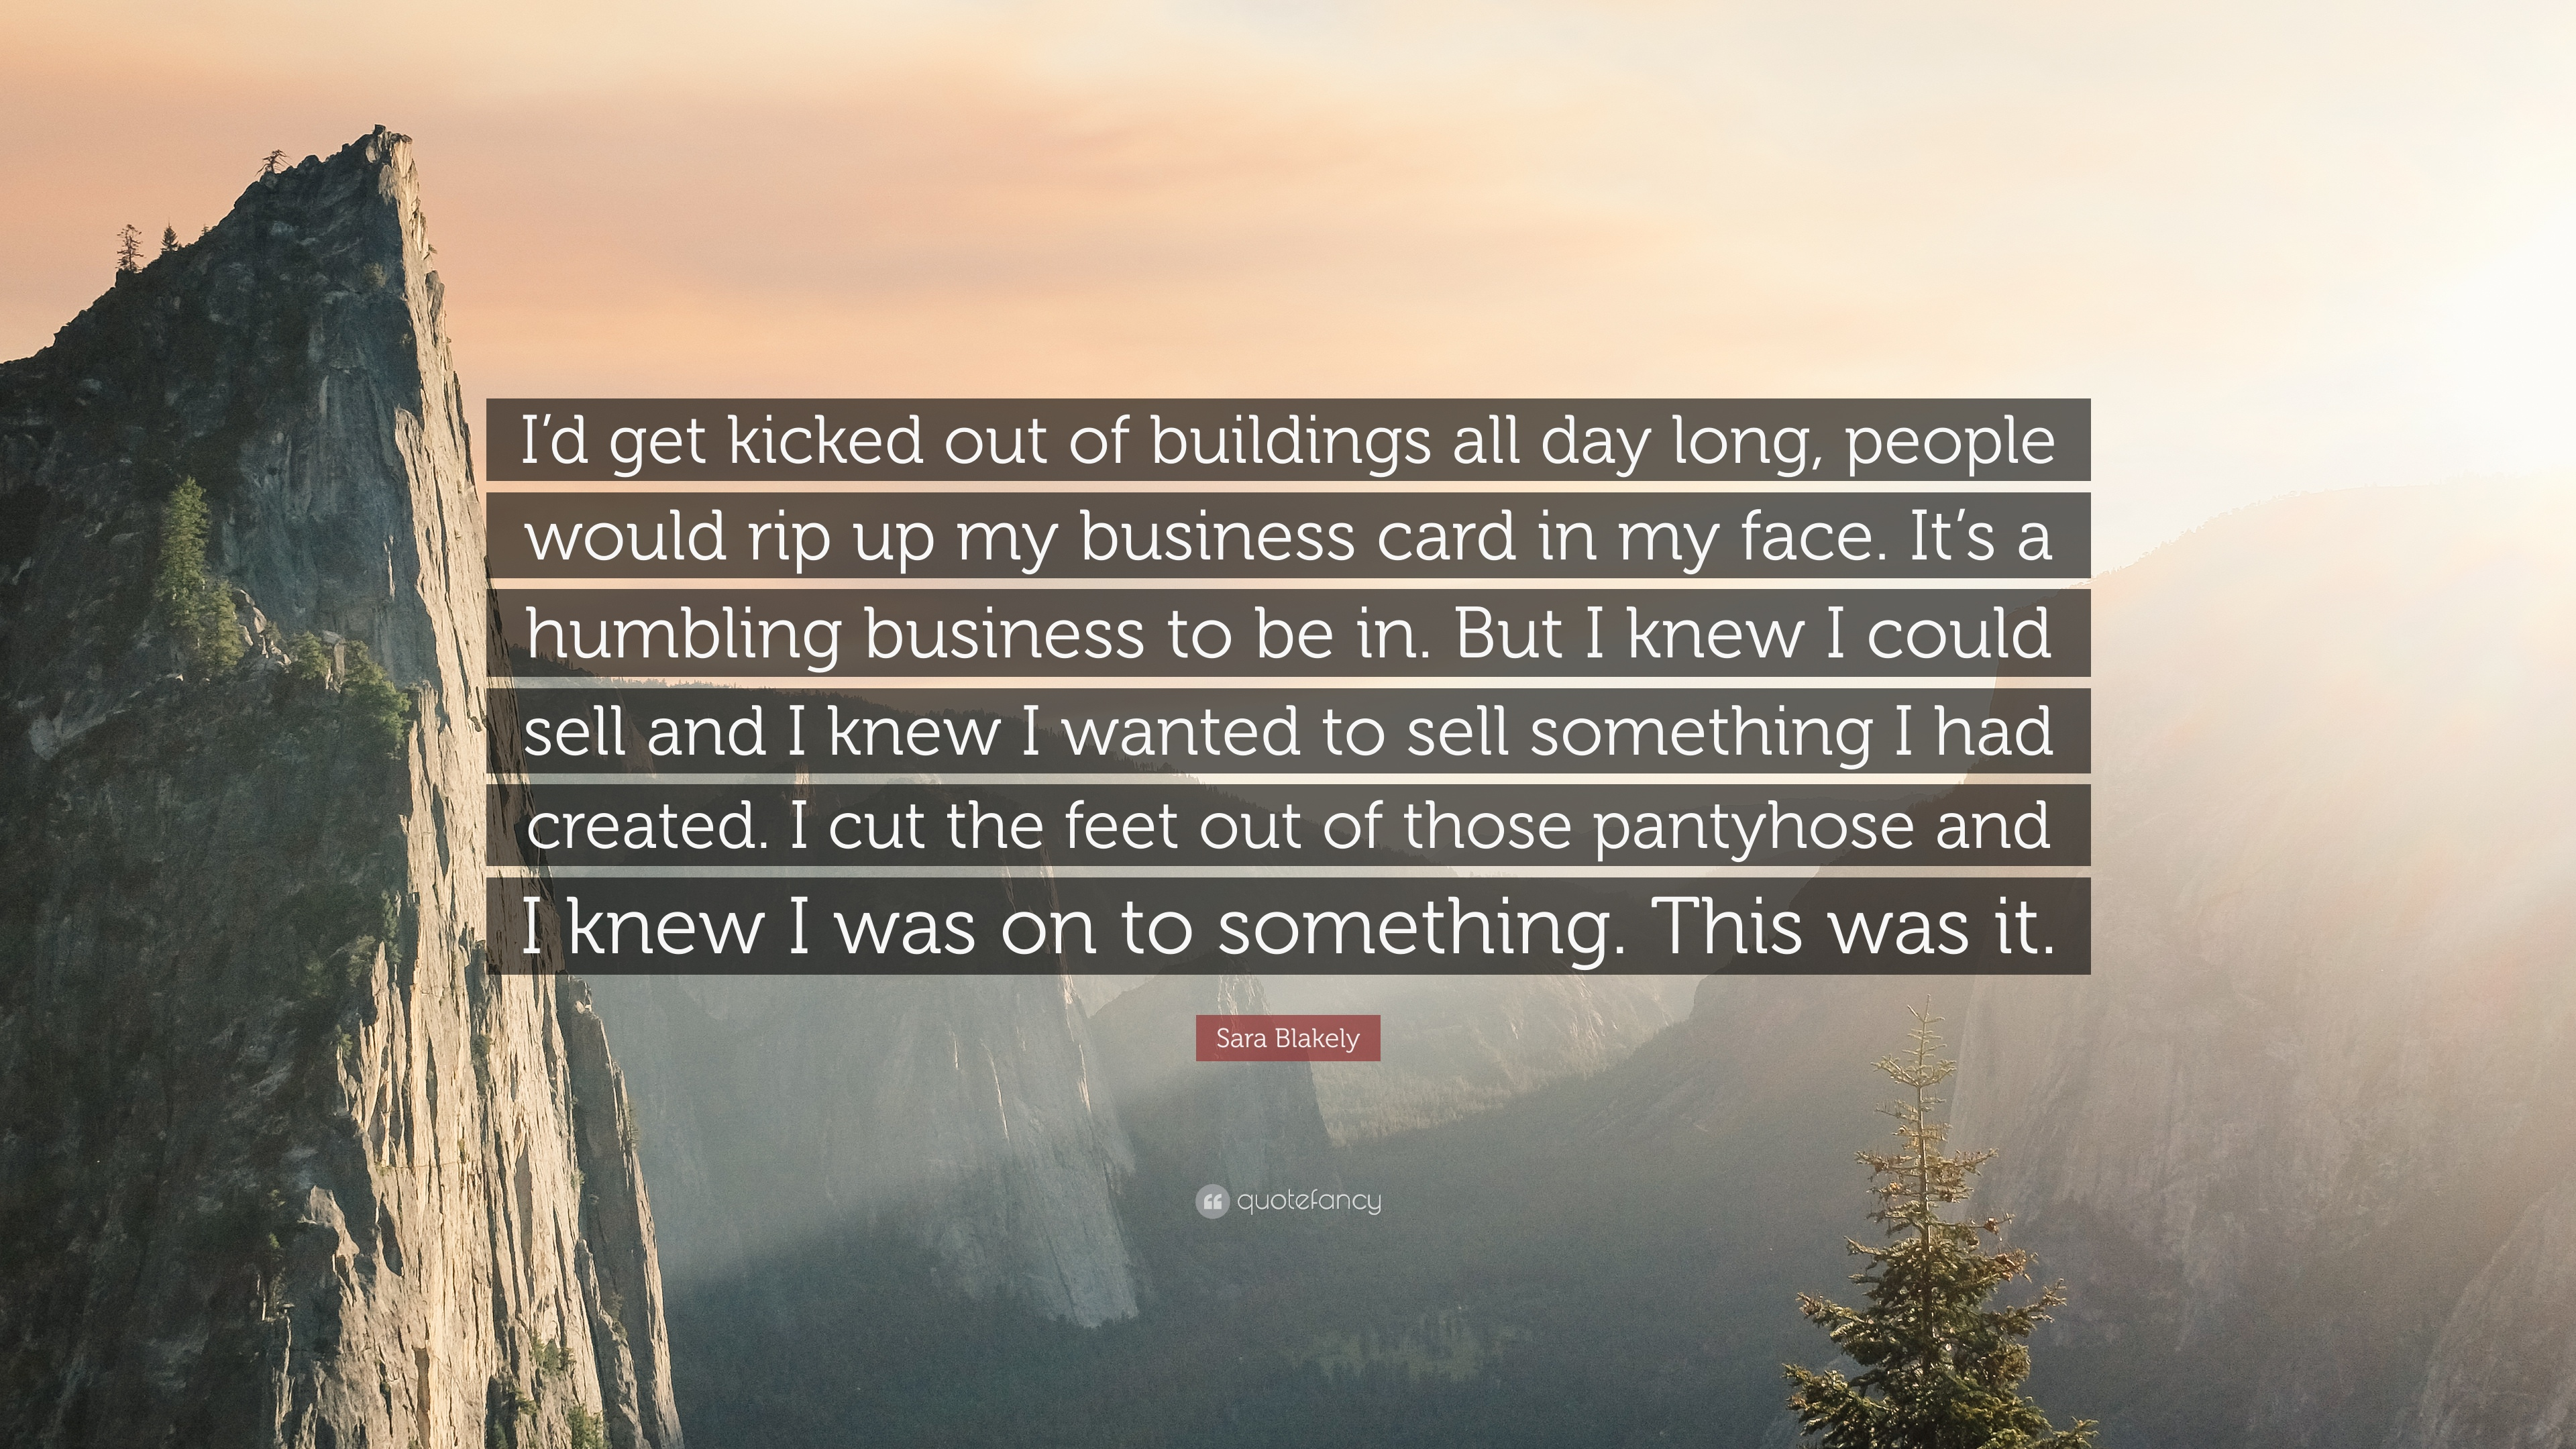 Sara blakely quote id get kicked out of buildings all day long sara blakely quote id get kicked out of buildings all day long colourmoves